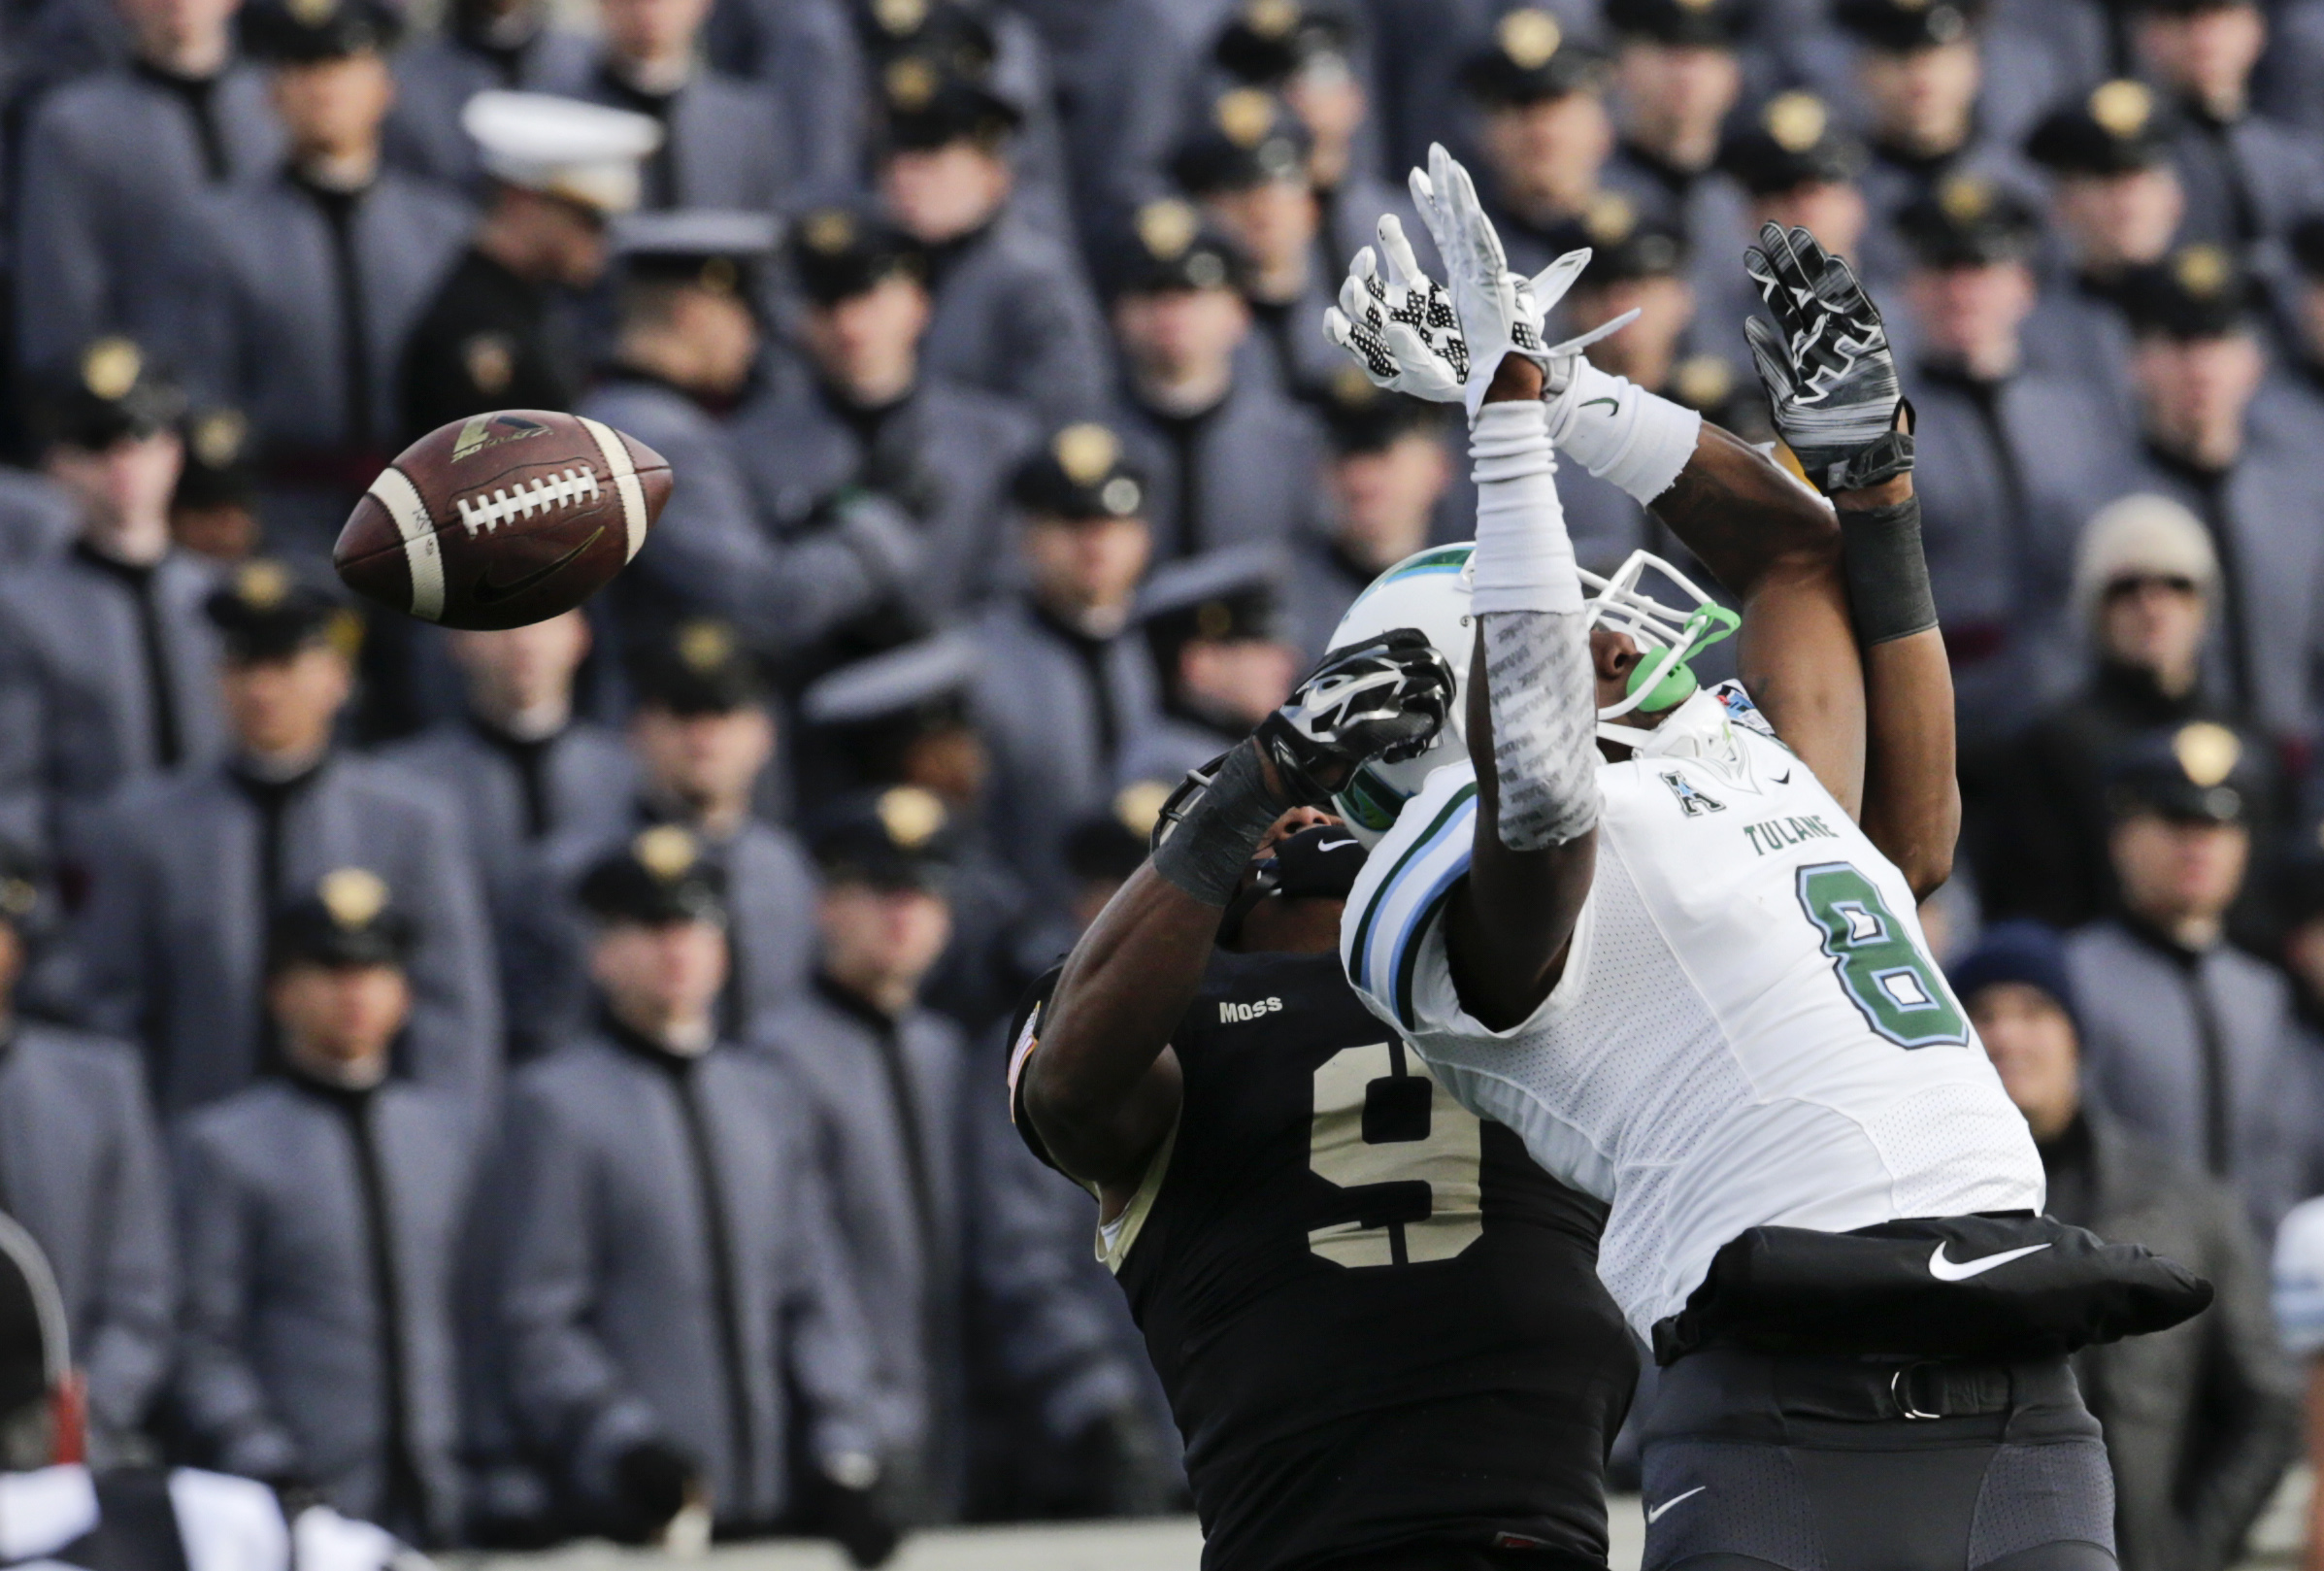 Army defensive back Xavier Moss (9) breaks up a pass intended for Tulane wide receiver Devon Breaux (8) during the second half of an NCAA college football game on Saturday, Nov. 14, 2015, in West Point, N.Y. Tulane won 34-31. (AP Photo/Mike Groll)